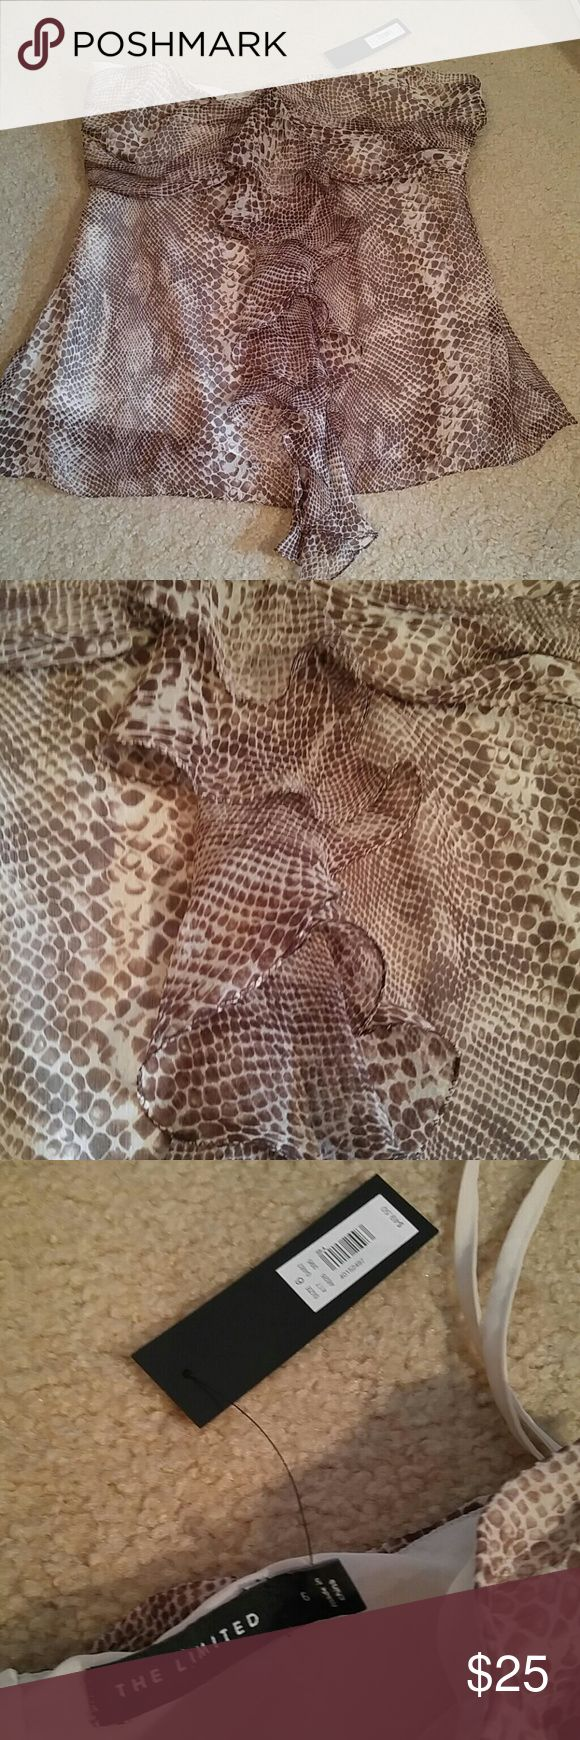 "The Limited Brown Cream Bandeau Blouse Sz 6 The Limited Brown & Cream snake print design, Bandeau strapless Blouse. Ruffled down the front.  Sz 6. New with tag. Zips up the side. 100% silk lined with 100% polyester. Armpit to armpit 15"". The Limited Tops Blouses"